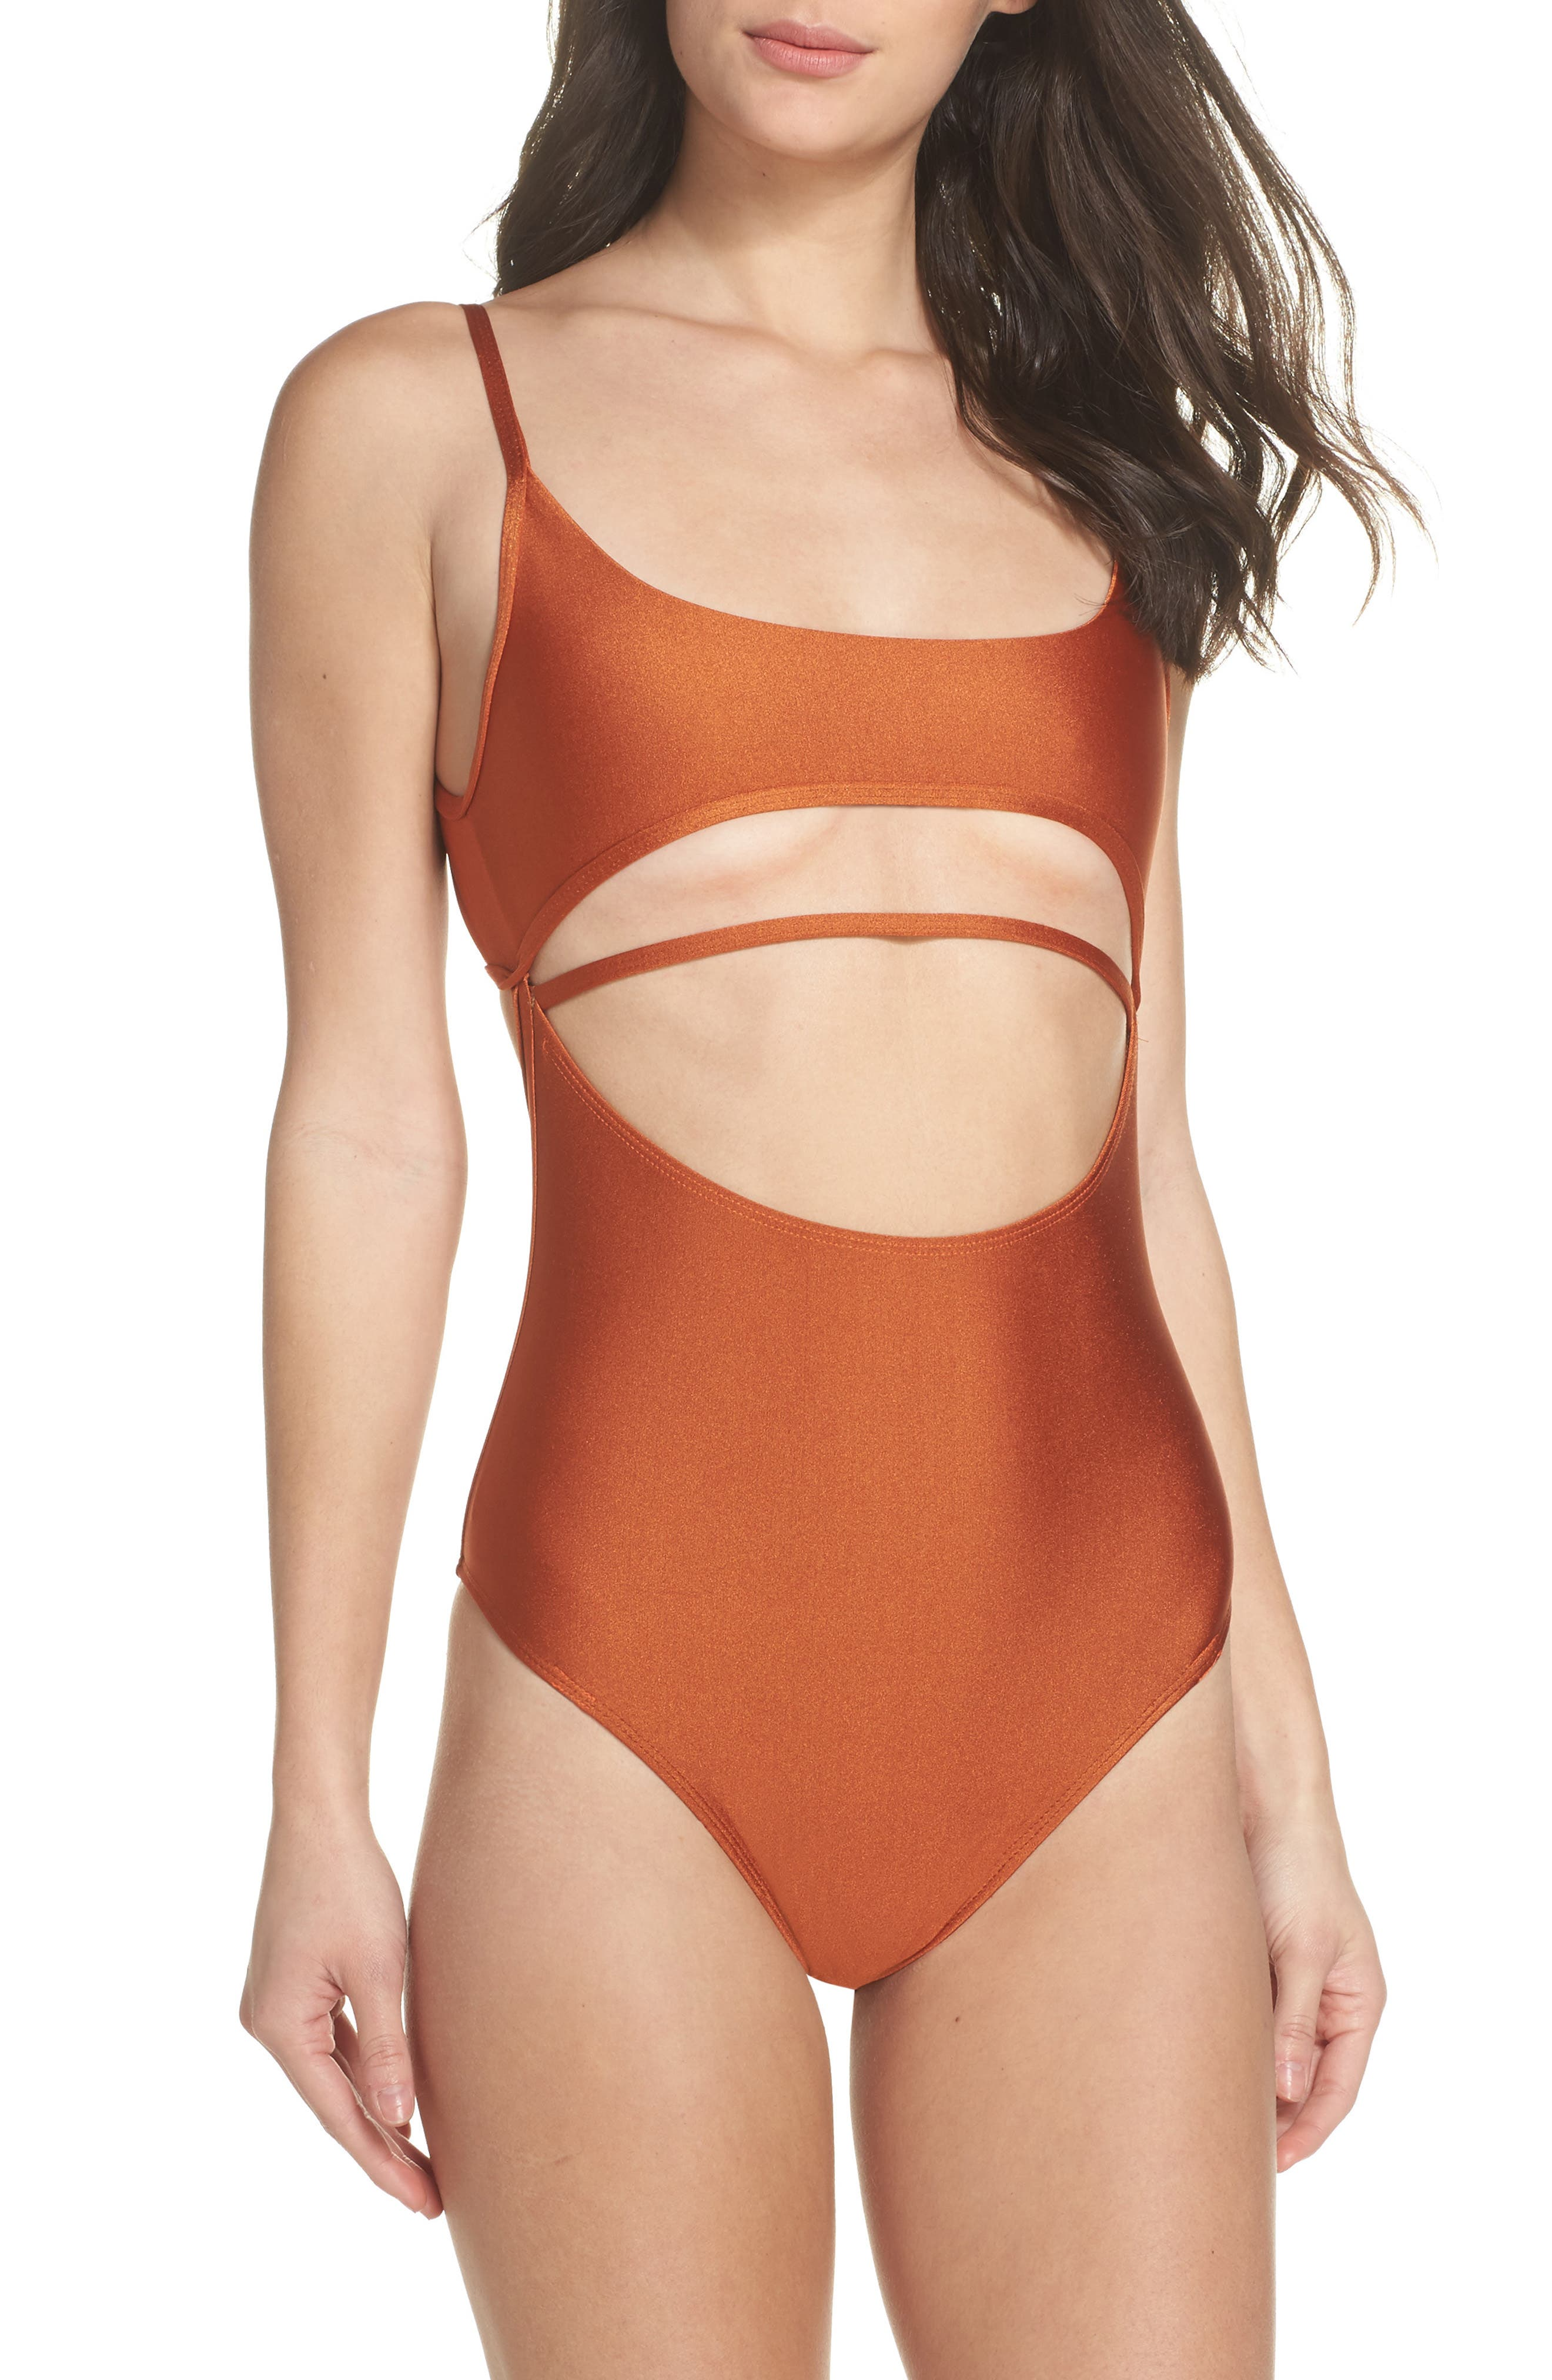 Strata One-Piece Swimsuit,                             Alternate thumbnail 2, color,                             800